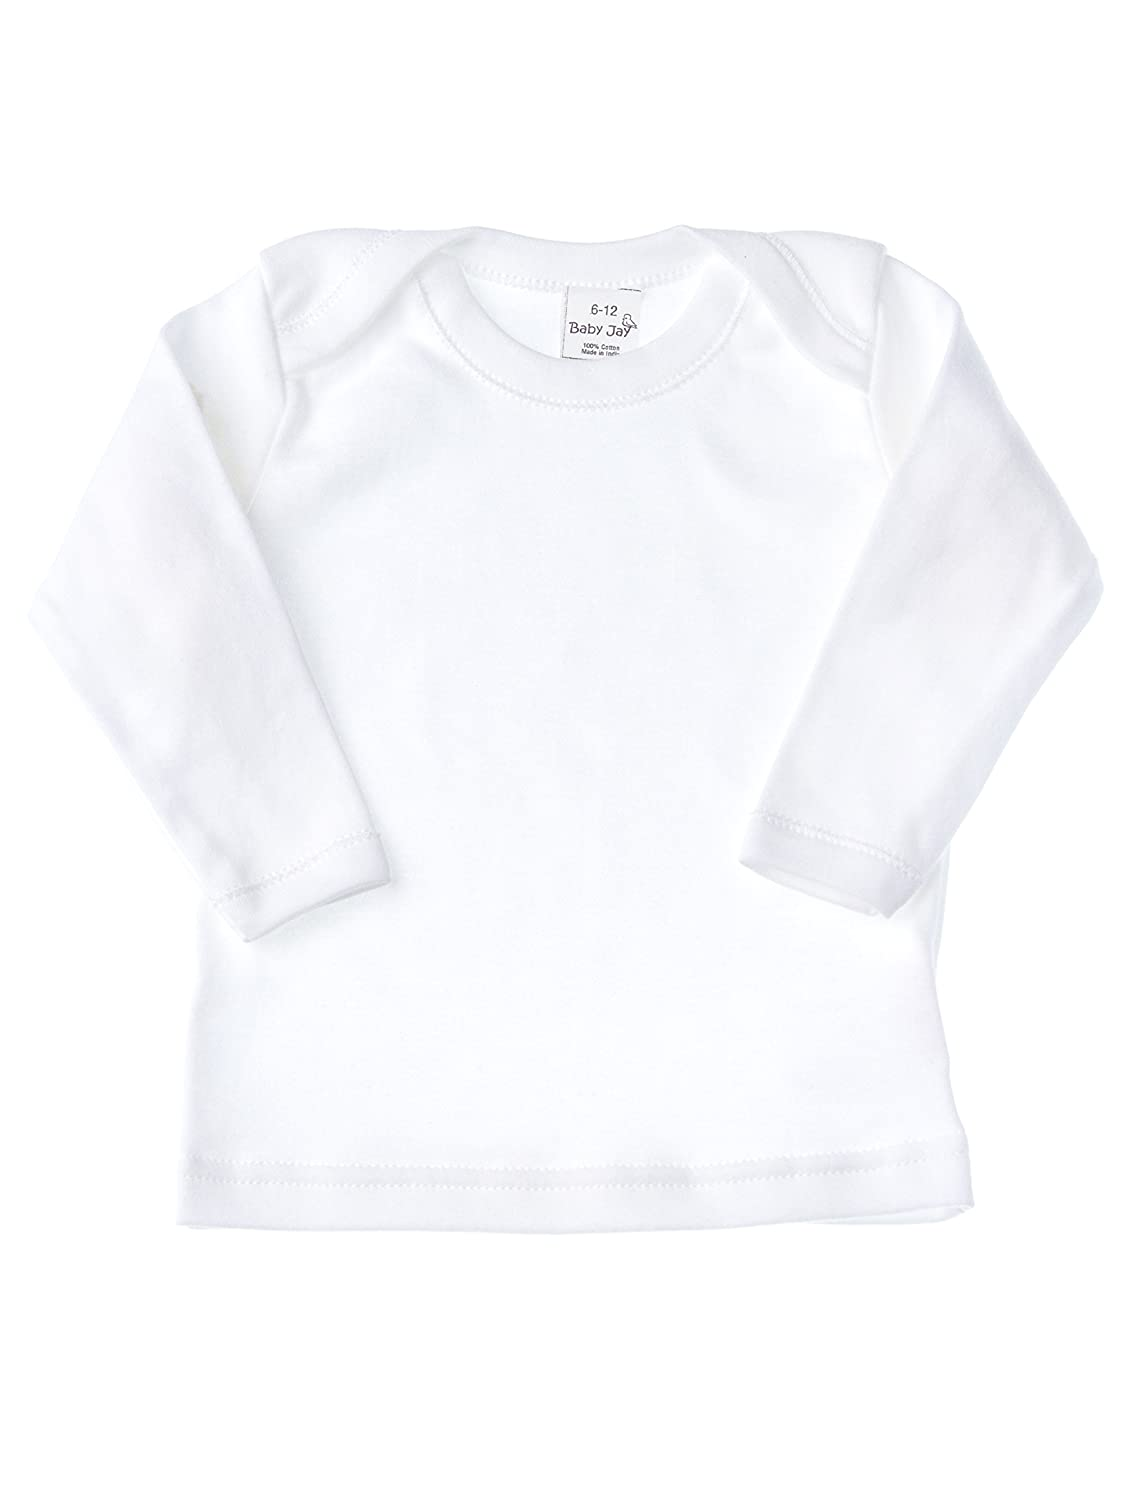 Baby Jay Long Sleeved Undershirt - White Unisex Baby and Toddler Soft Cotton Tee With Lap Shoulder - Boys and Girls T Shirt BJ-WTLE-1